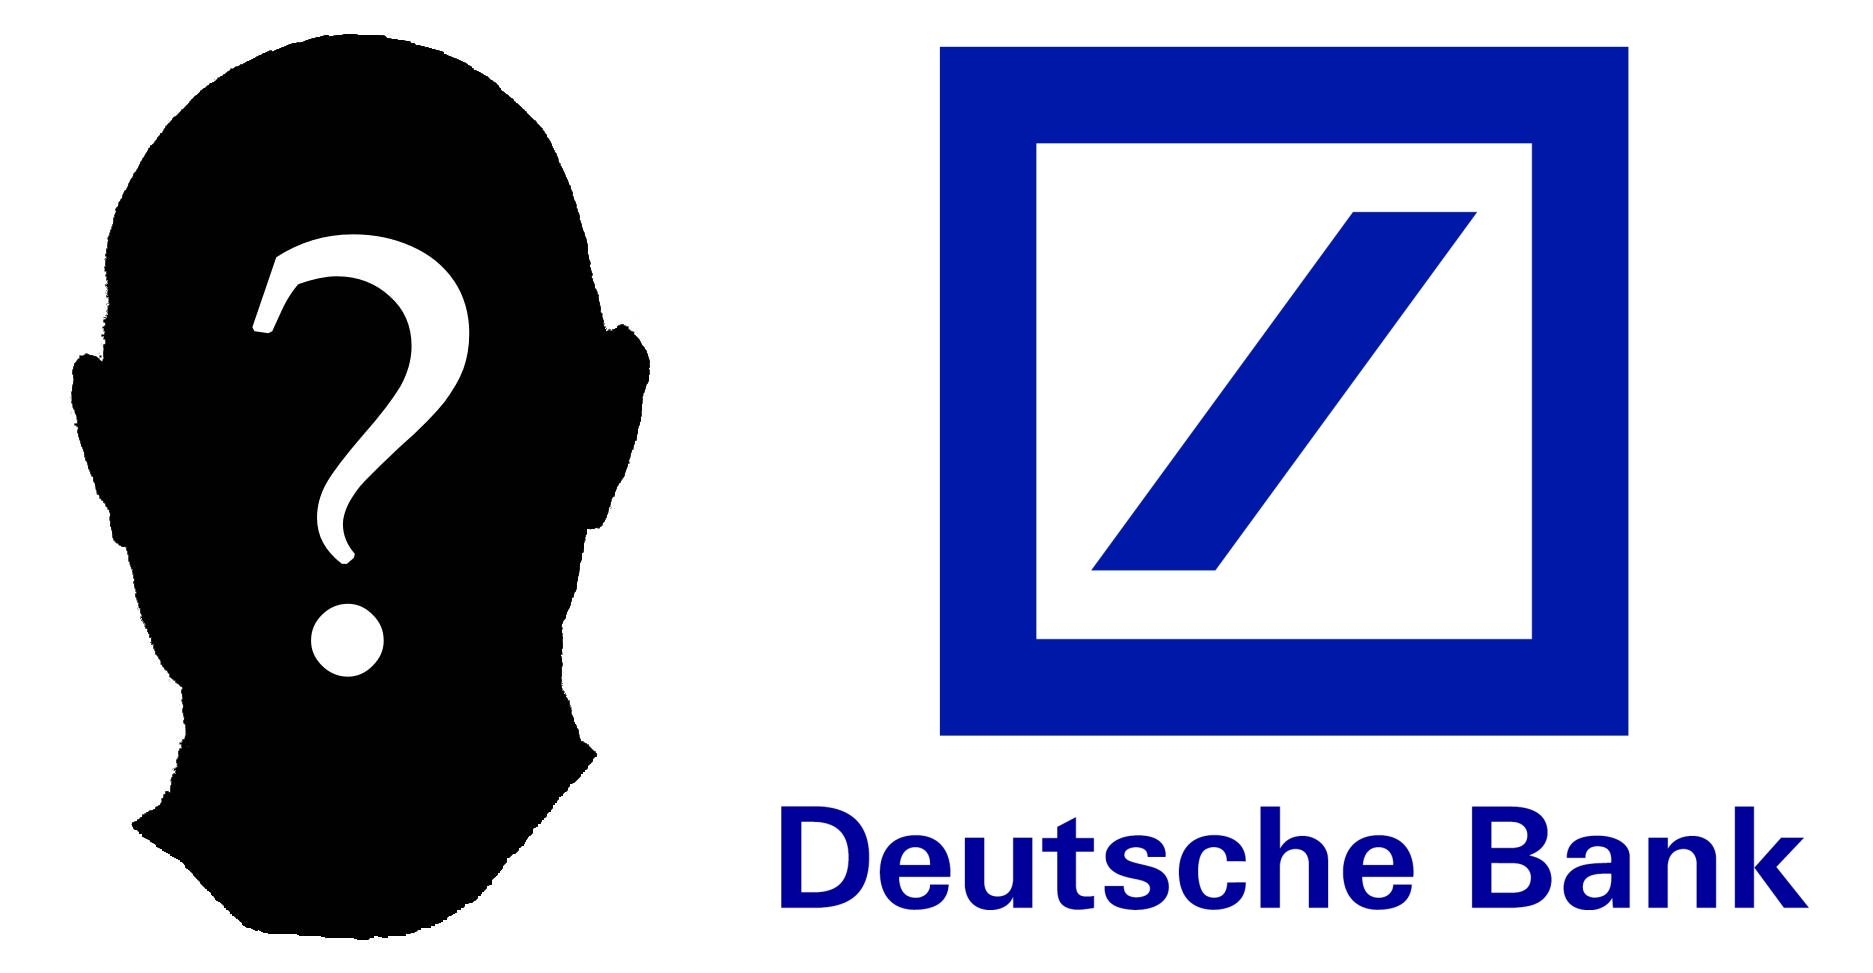 deutshe_bank_